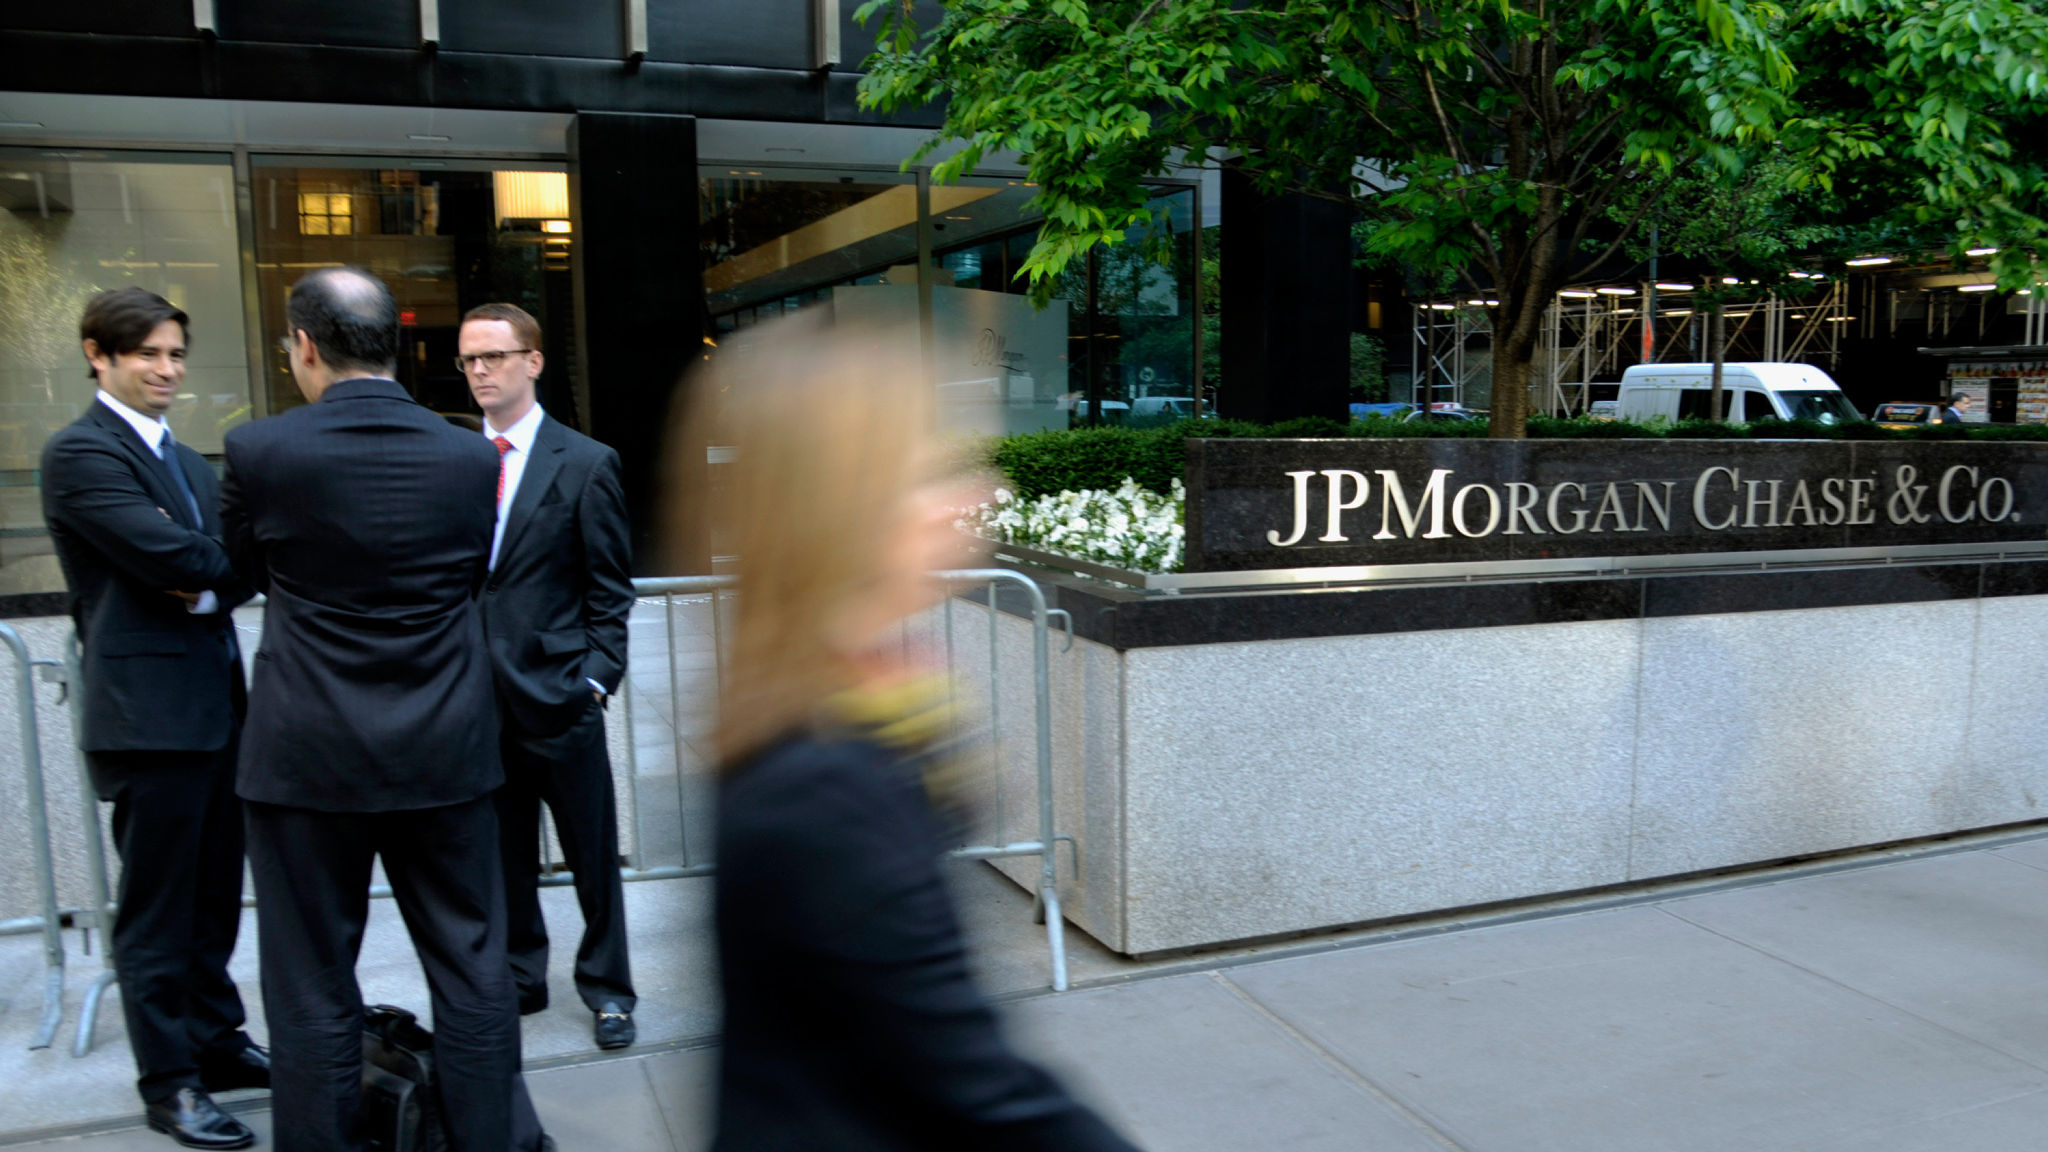 JPMorgan to bolster presence in Luxembourg ahead of Brexit